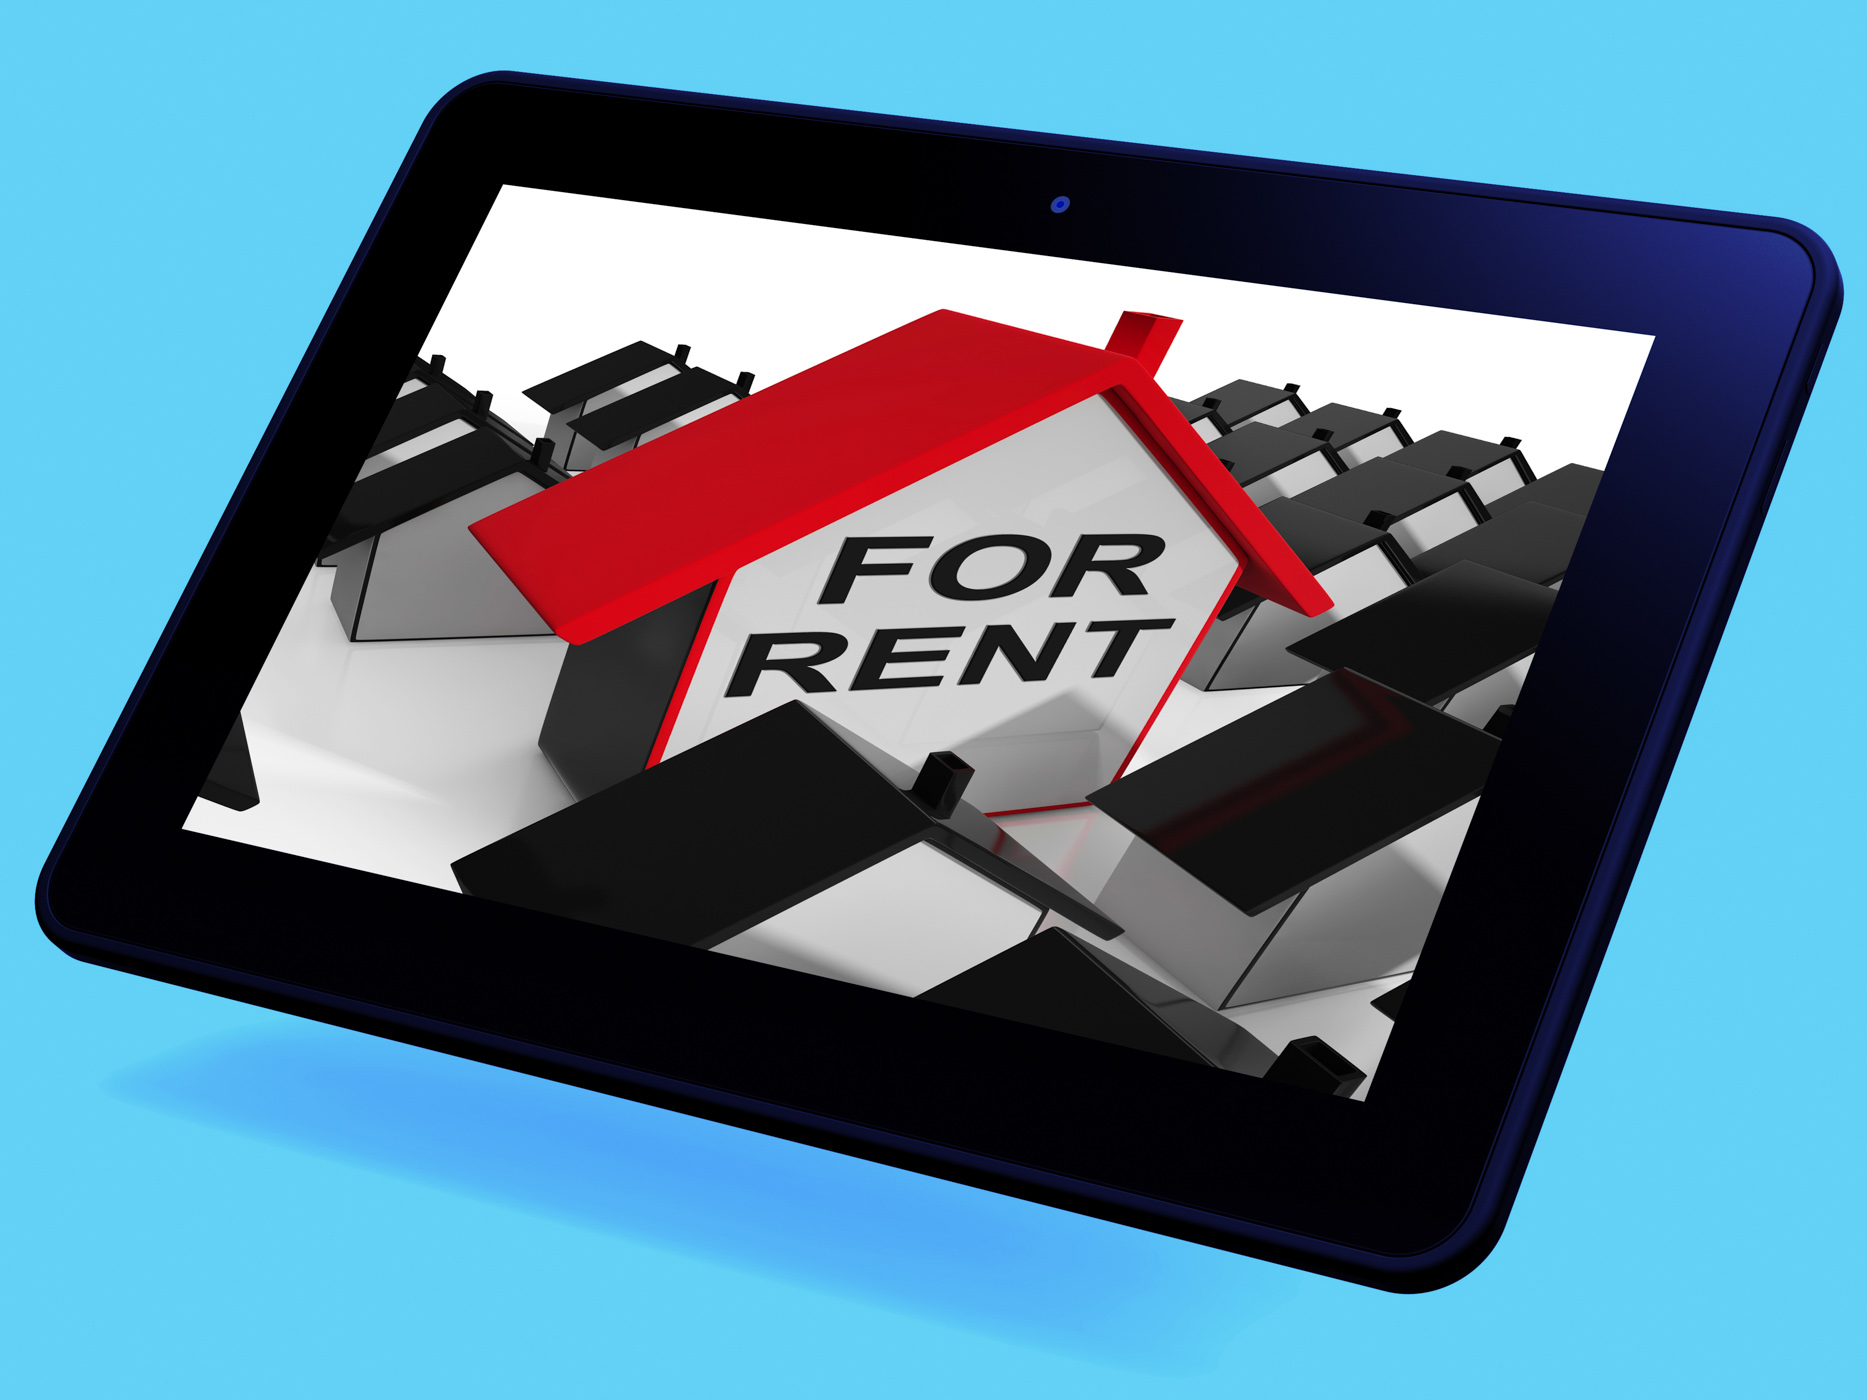 For rent house tablet means leasing to tenants photo